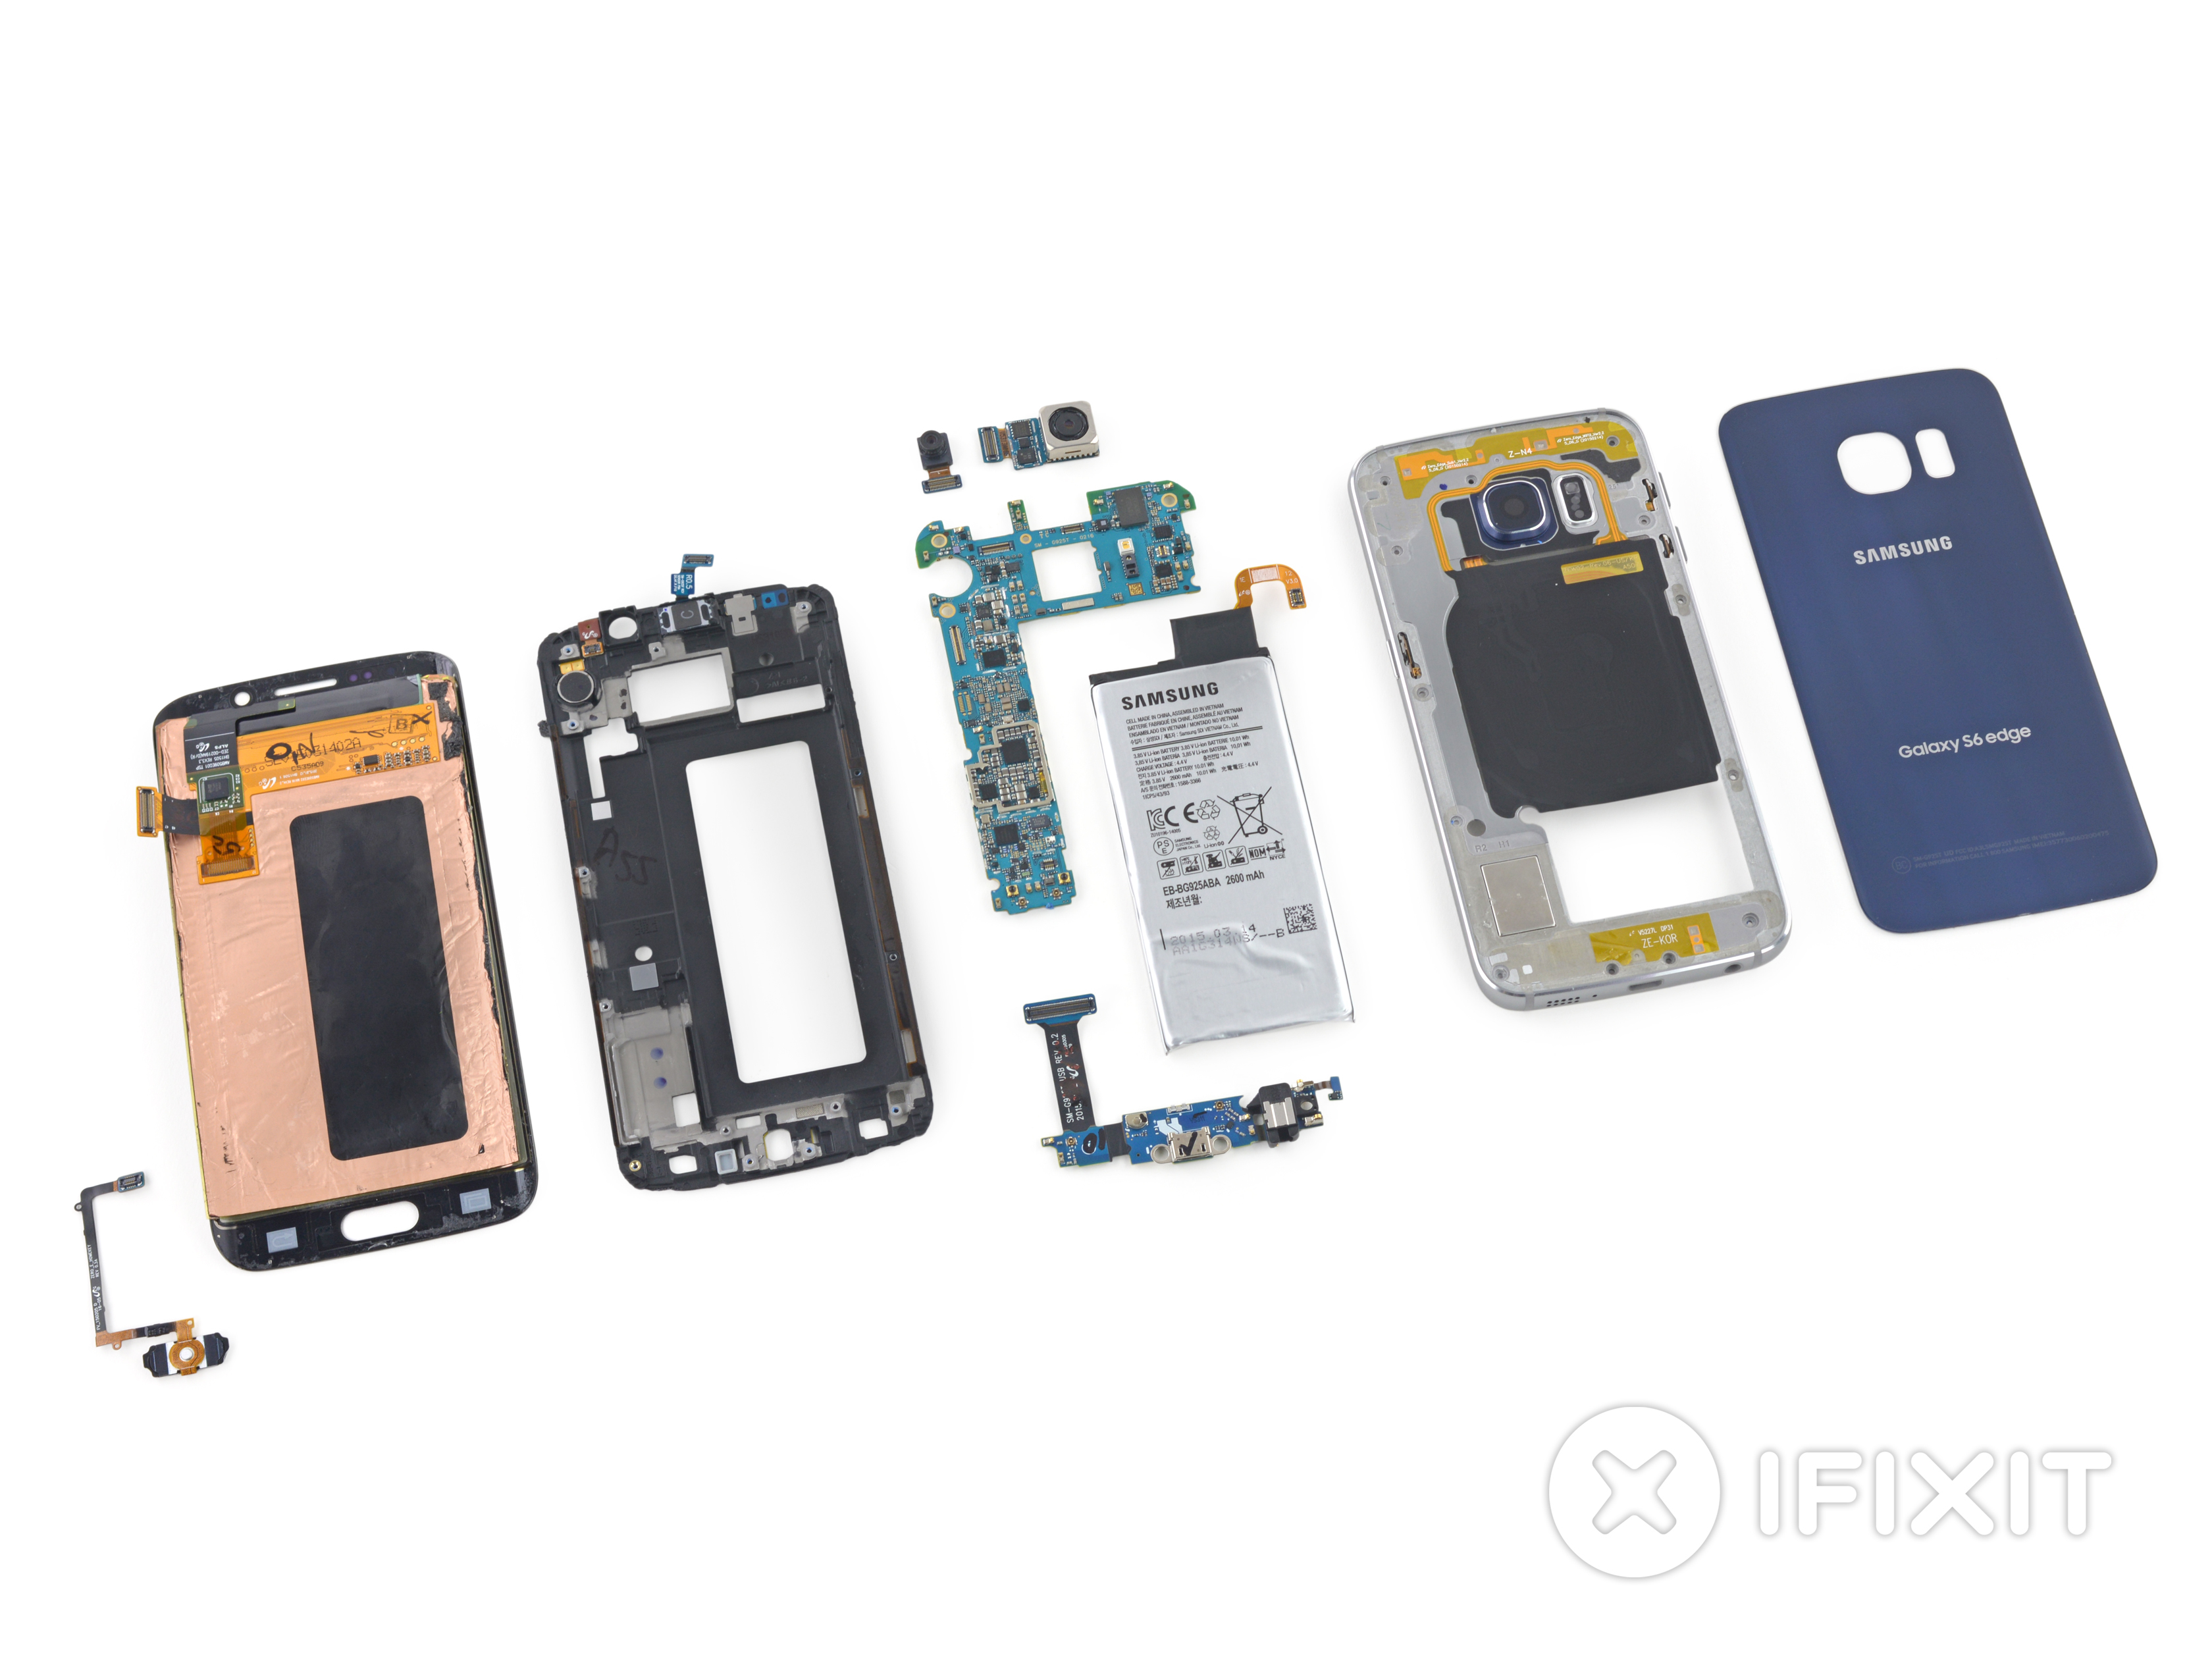 samsung galaxy s6 edge teardown ifixit. Black Bedroom Furniture Sets. Home Design Ideas